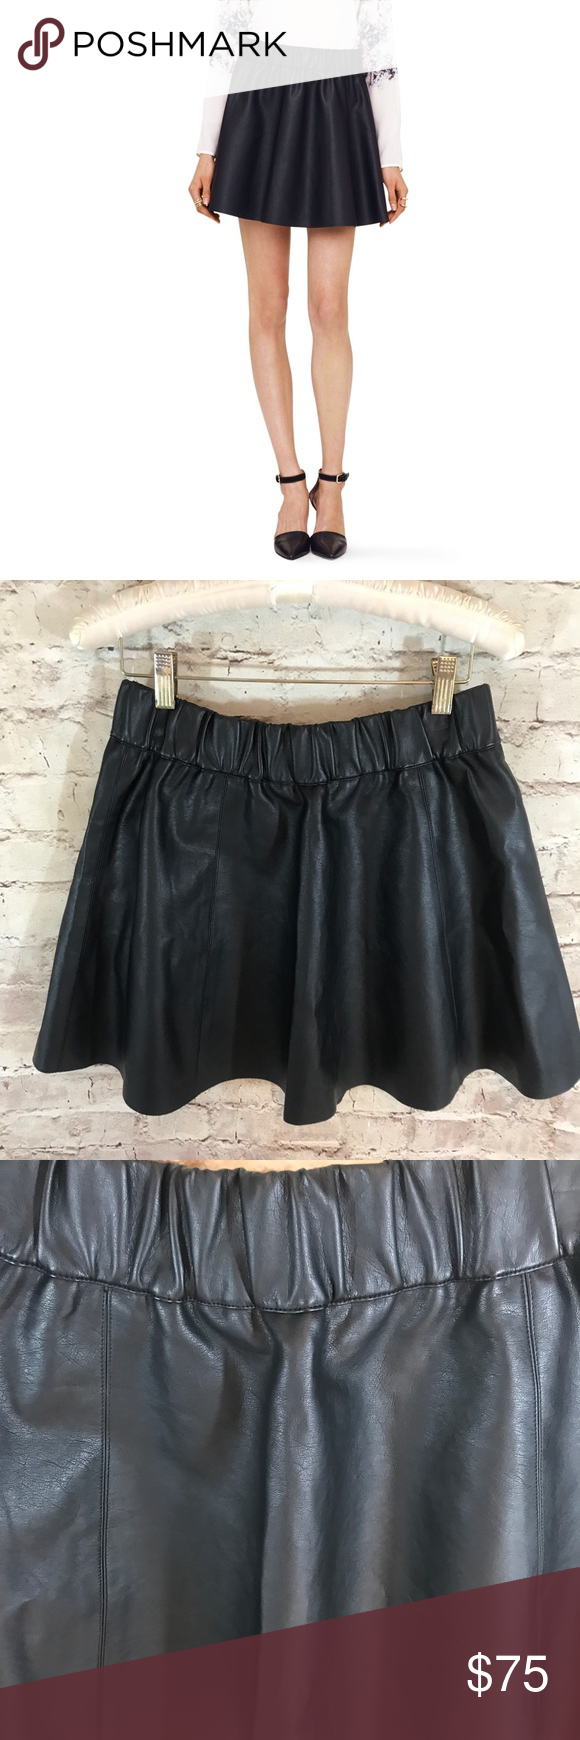 7d620ee9d5 NWT Club Monaco Lyn Faux Leather Mini Skirt So cute and perfectly on trend!  Brand new with tags. Size 2. Waist 26-27